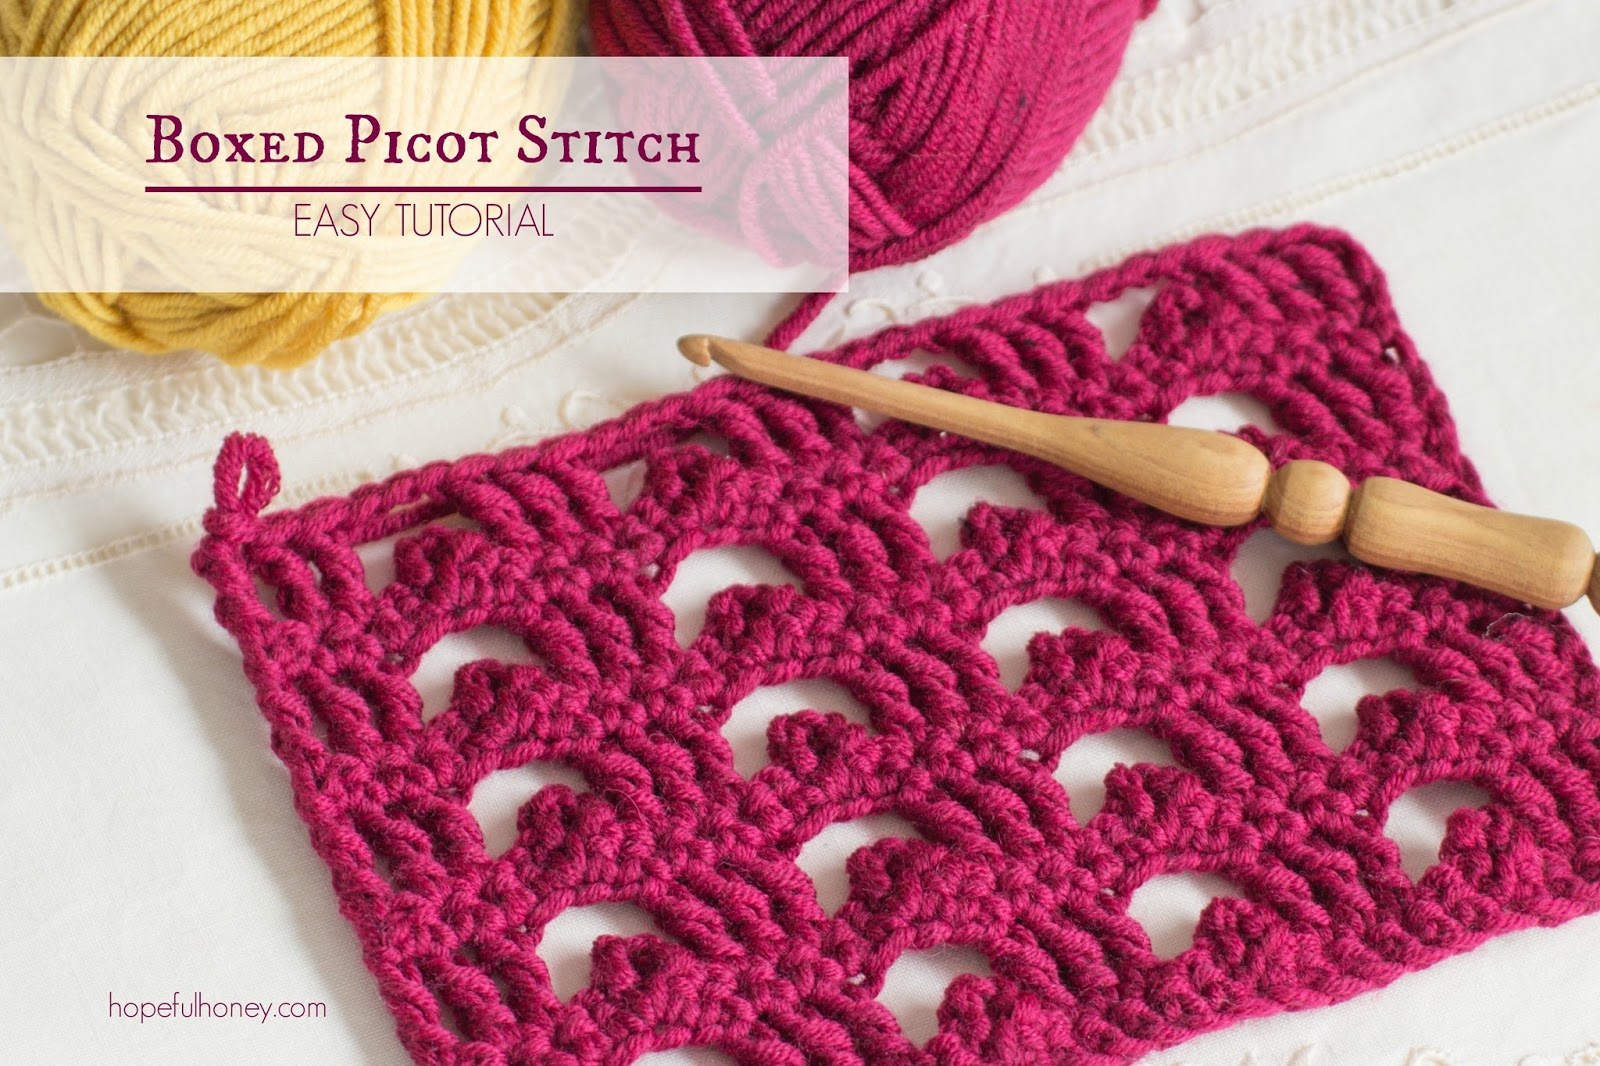 Crochet Stitches Picot : ... Crochet, Create: How To: Crochet The Boxed Picot Stitch - Easy